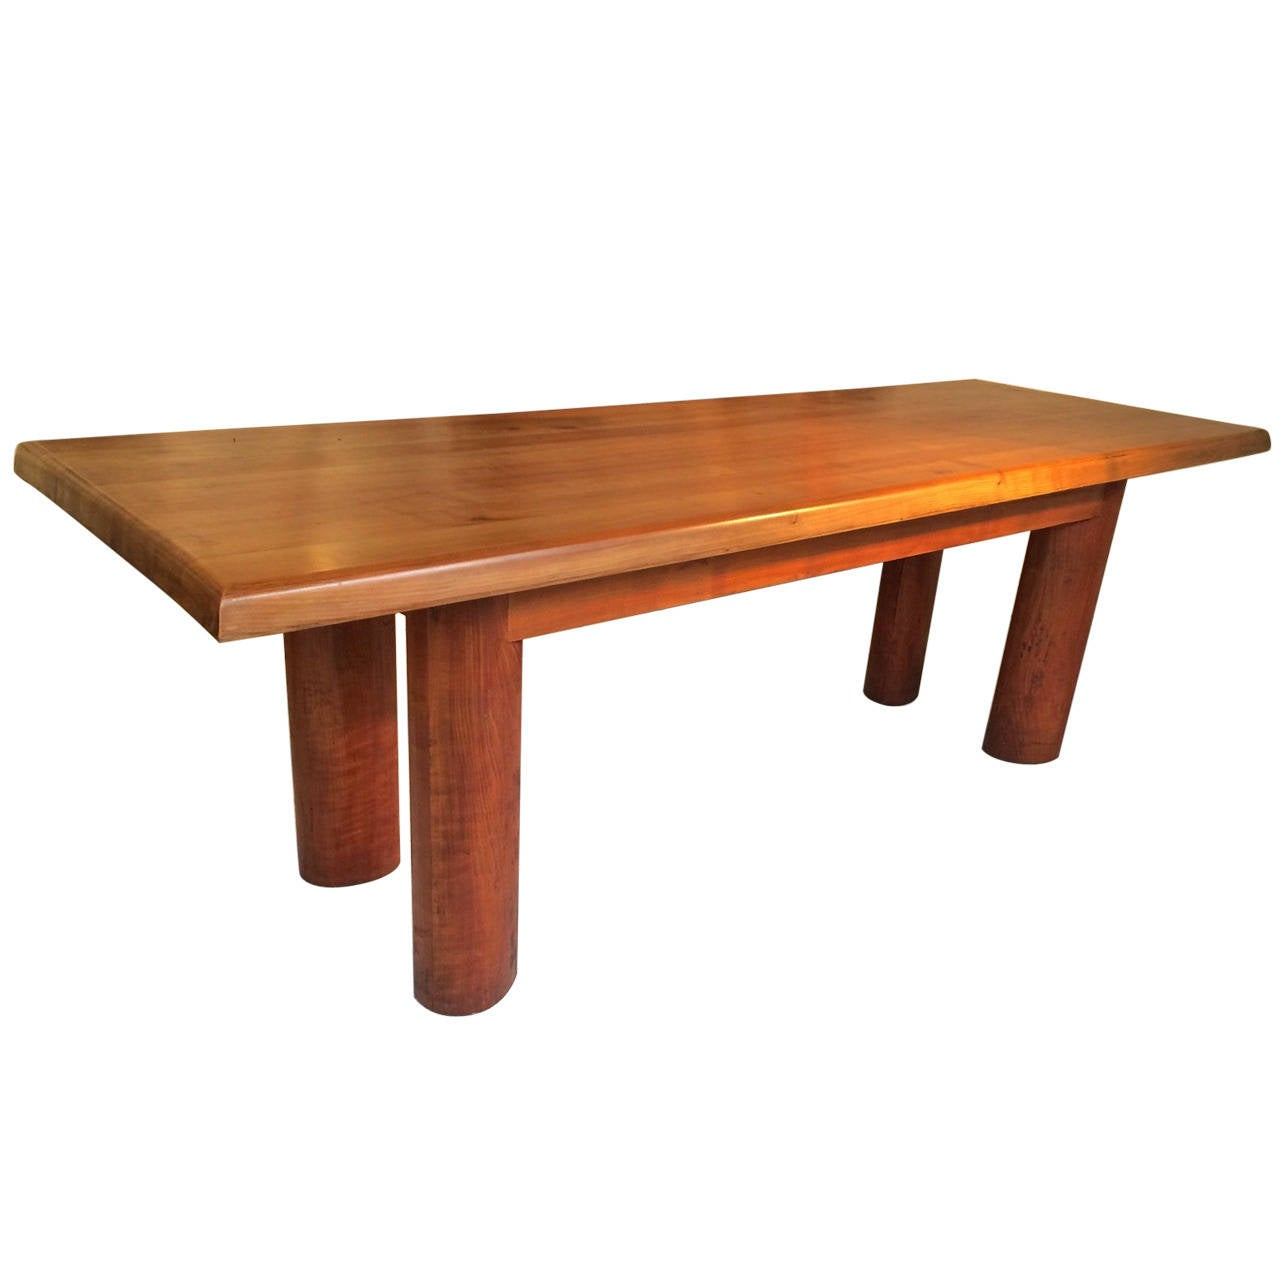 Charlotte perriand style solid wood long table at 1stdibs for To the table